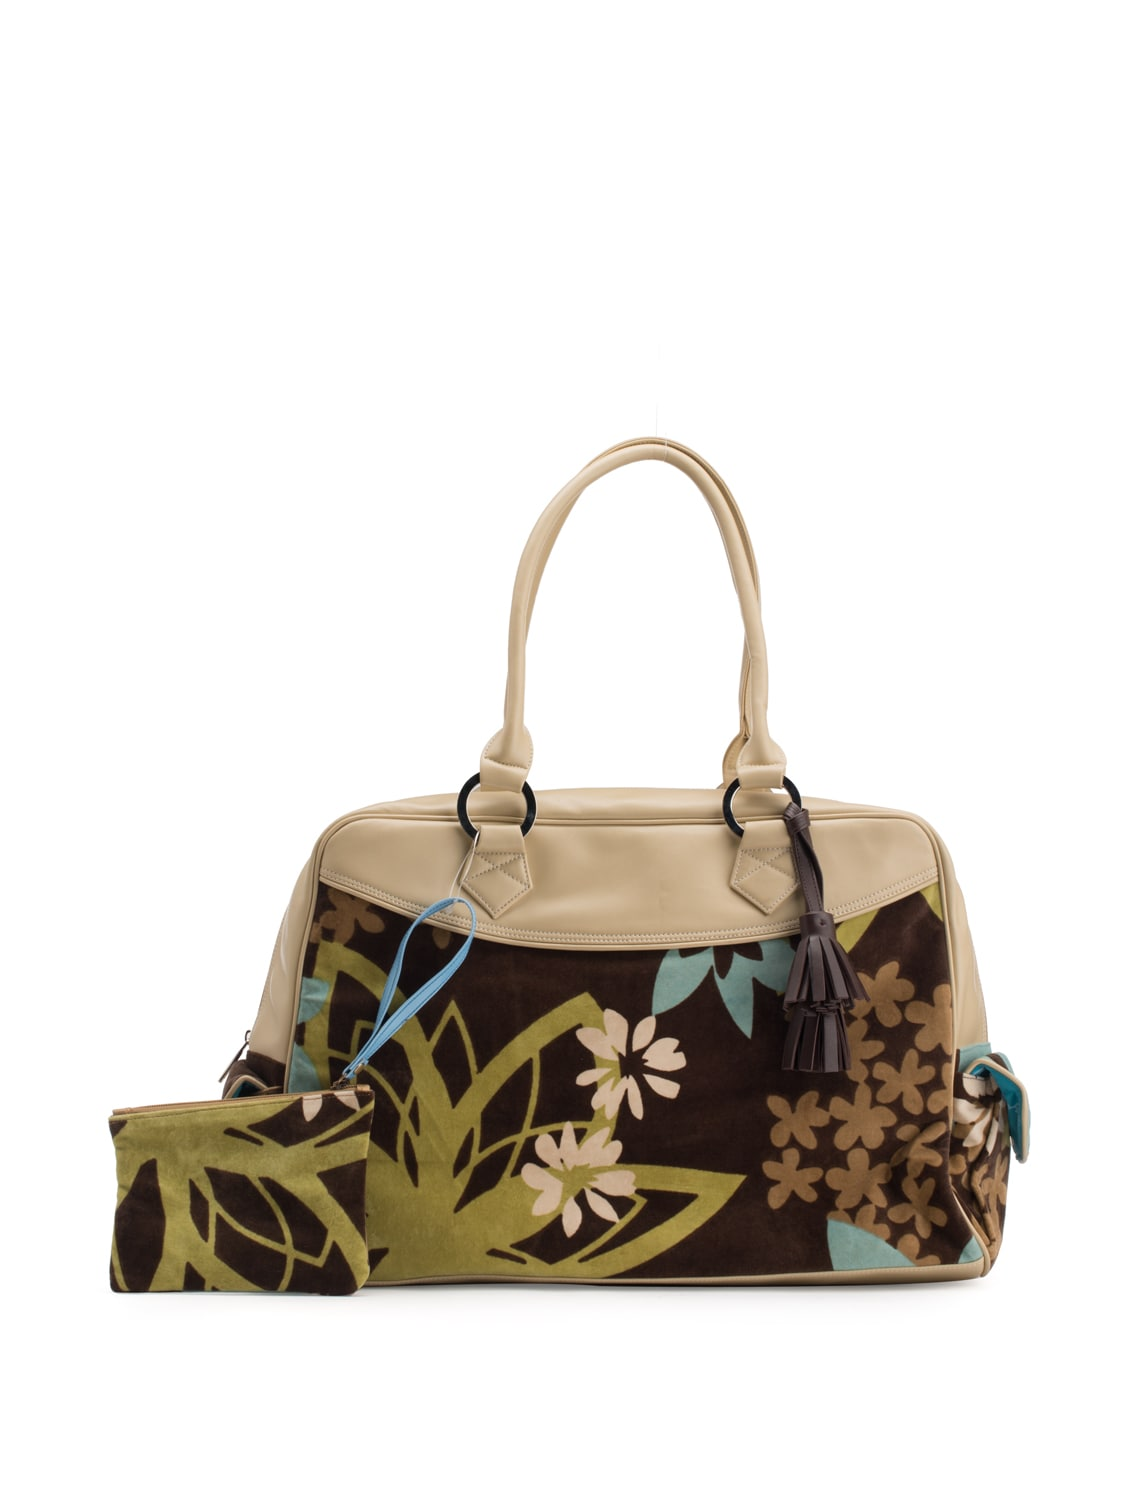 Beige Trim Overnight Bag With Floral Print - Toshe